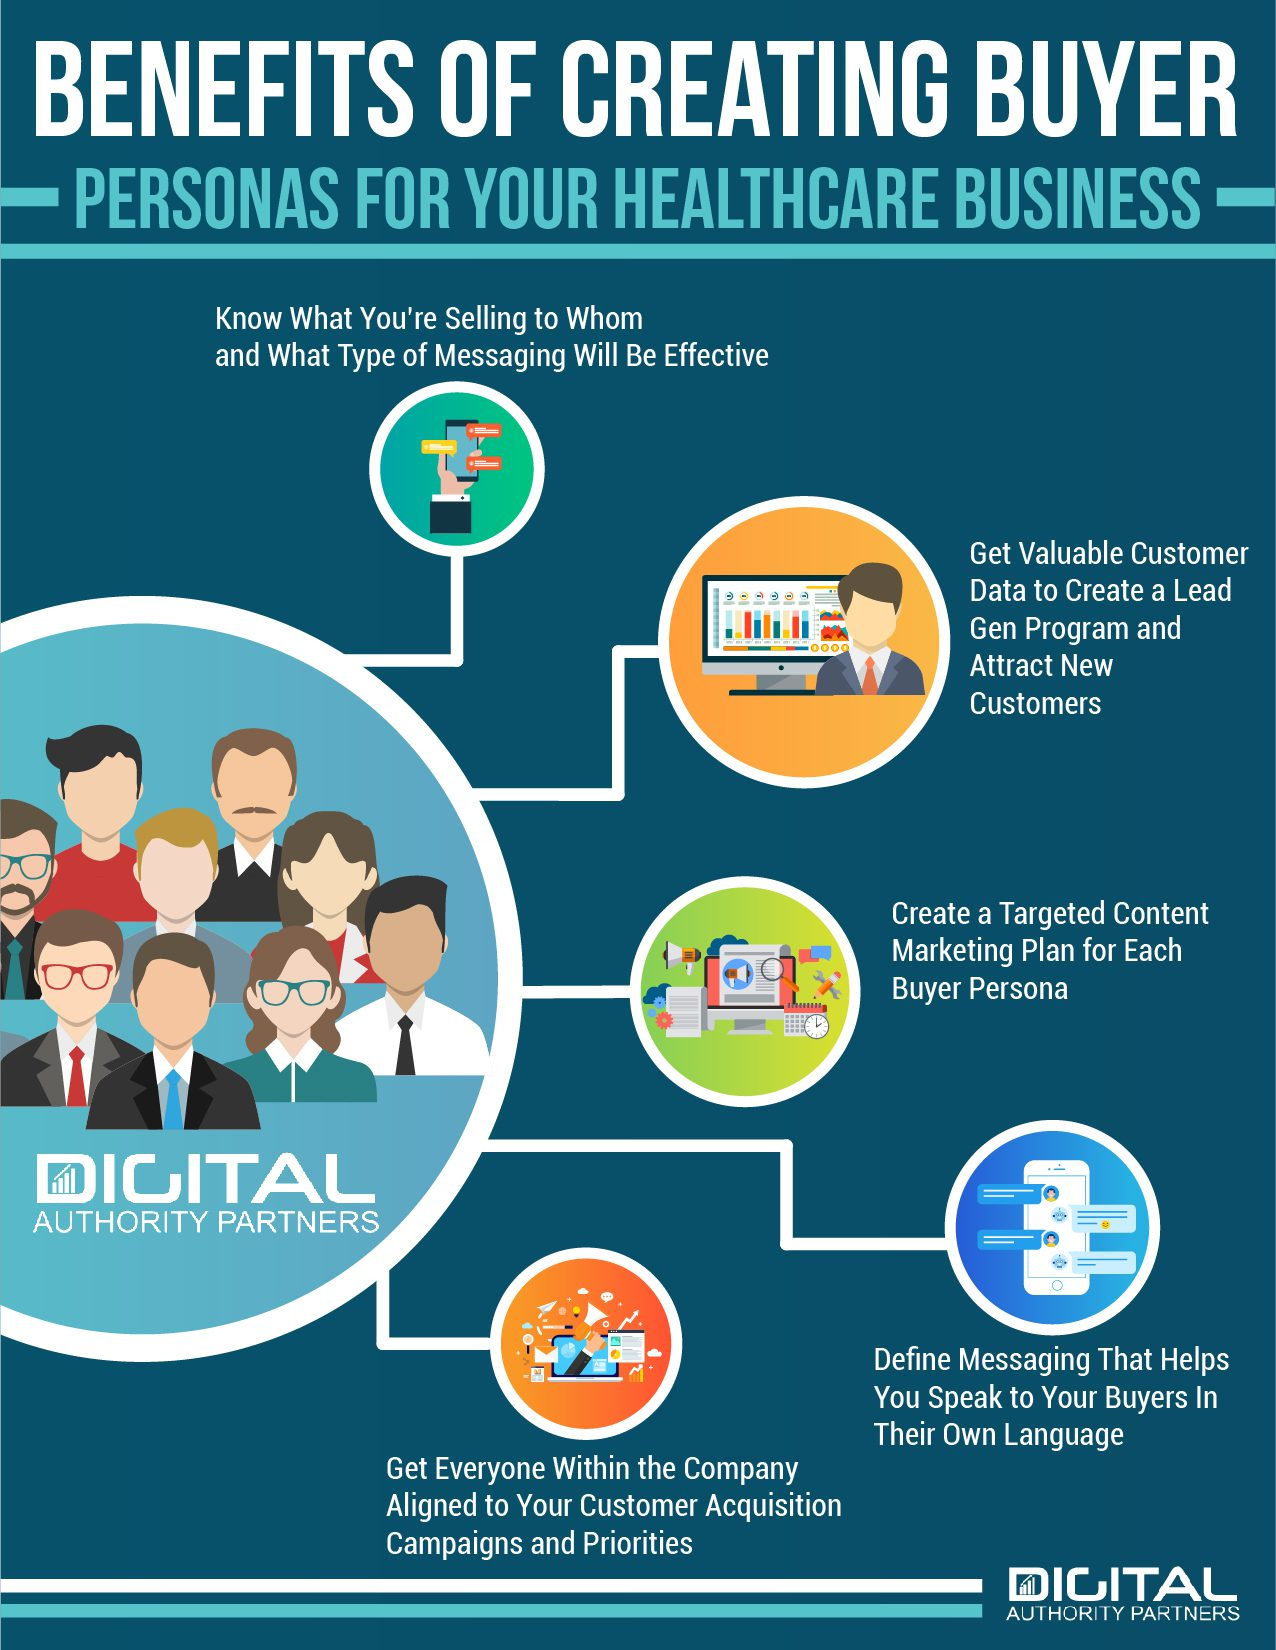 benefits of creating buyer personas for your healthcare business include knowing your customer, defining the right messaging, and creating alignment within the company